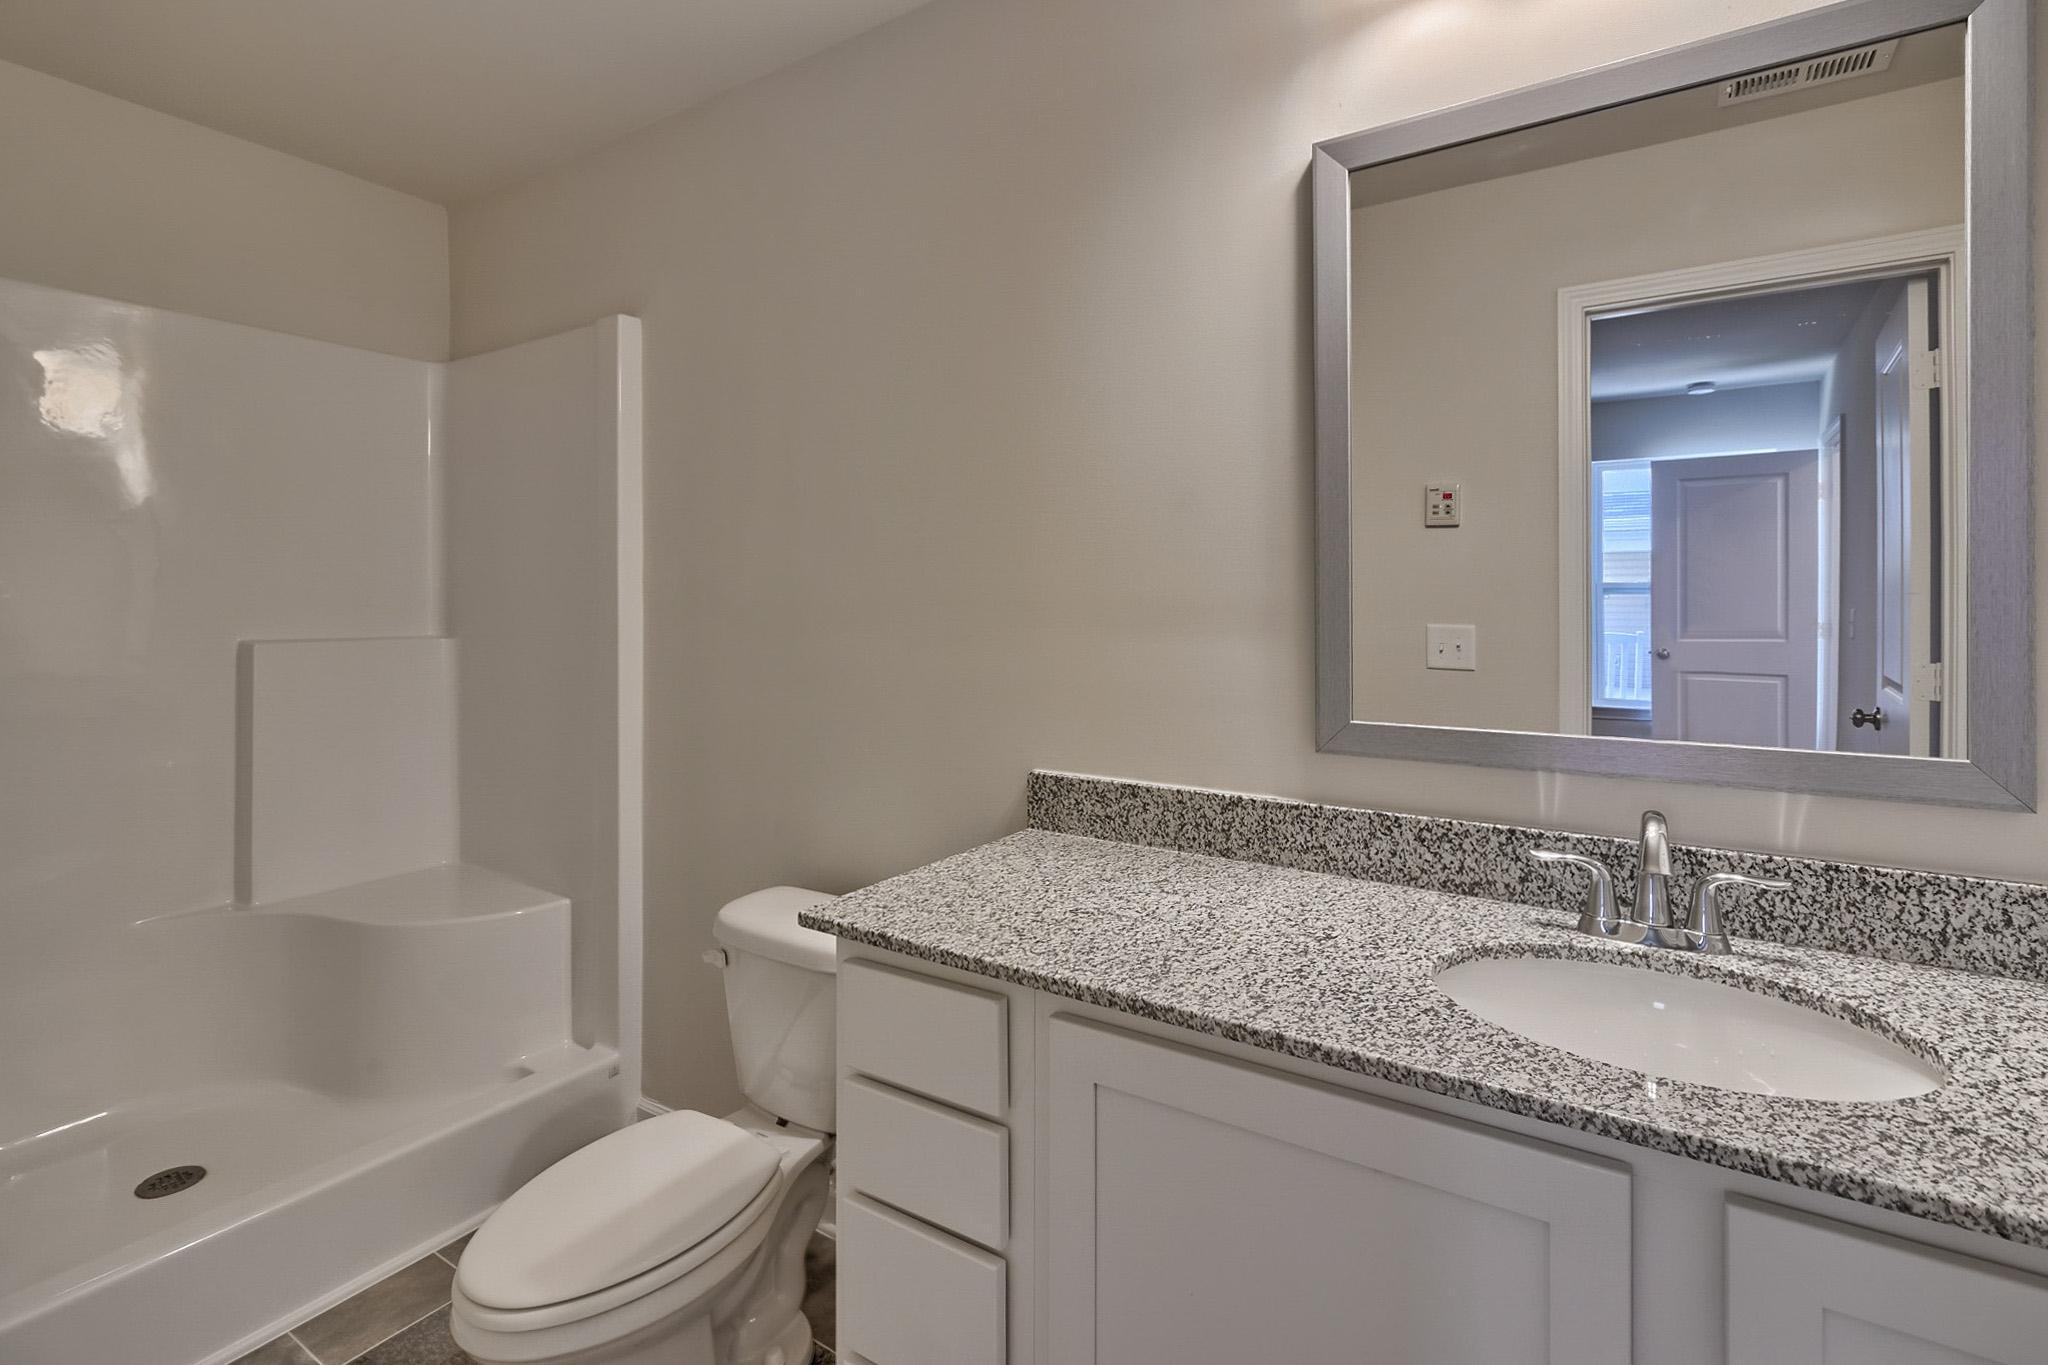 Bathroom featured in the Dogwood By McGuinn Hybrid Homes in Columbia, SC